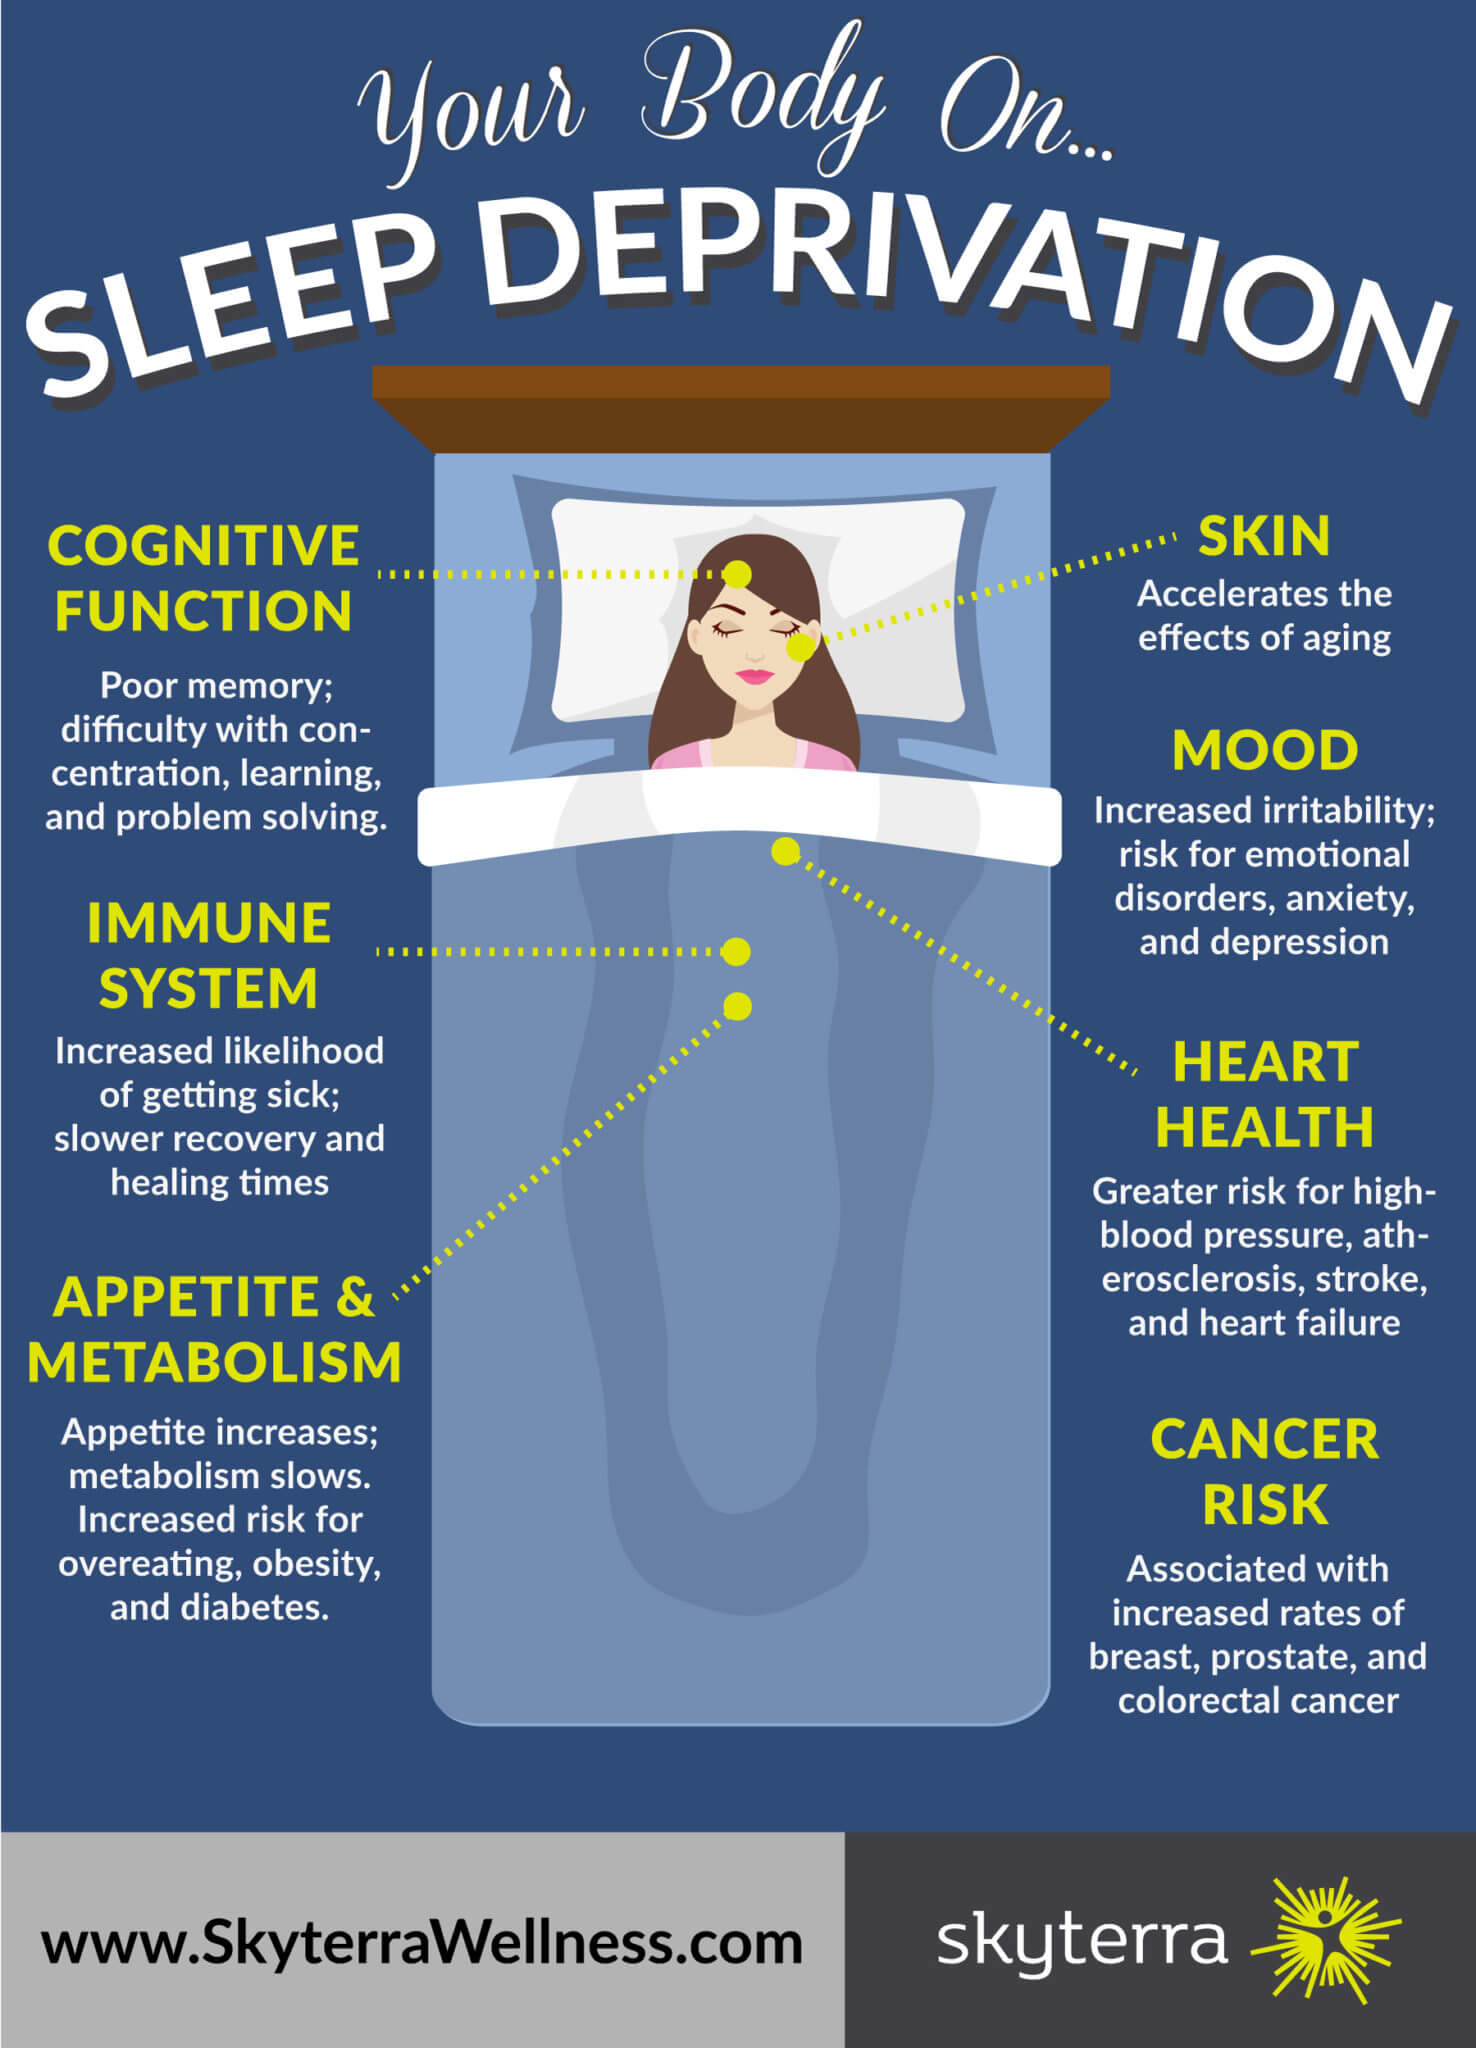 Your Body On Sleep Deprivation